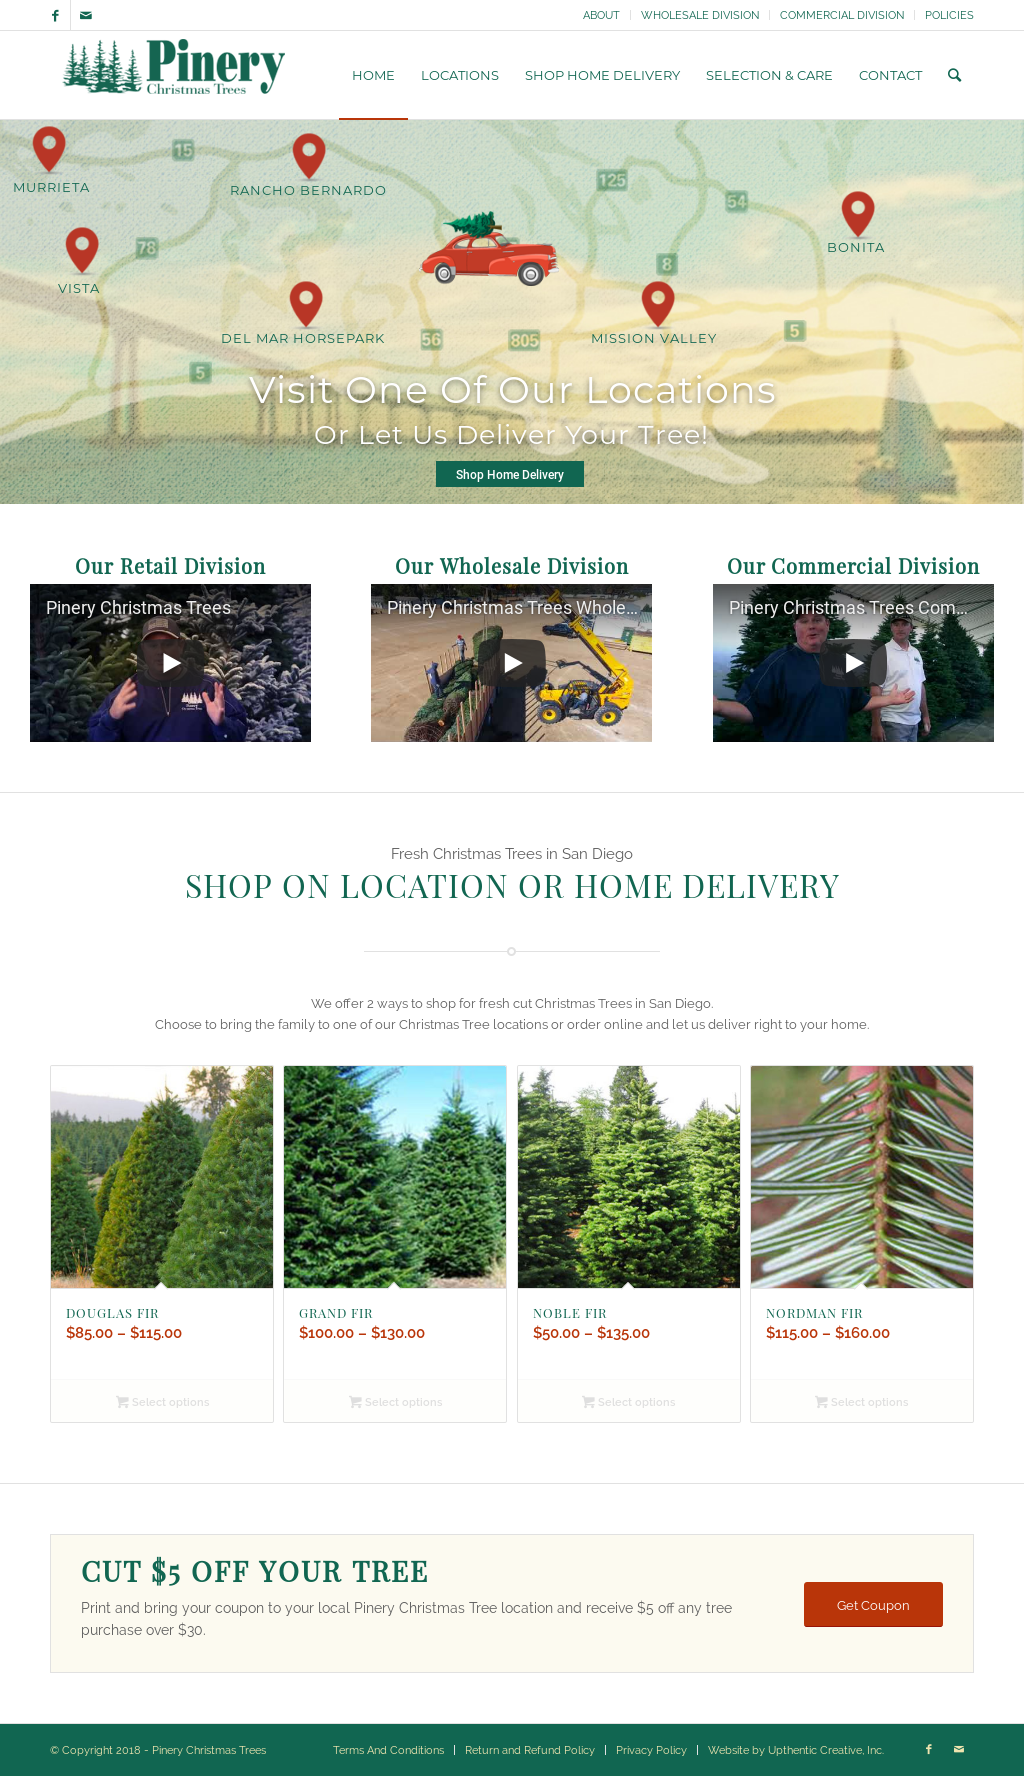 pinery christmas trees website history - Pinery Christmas Trees